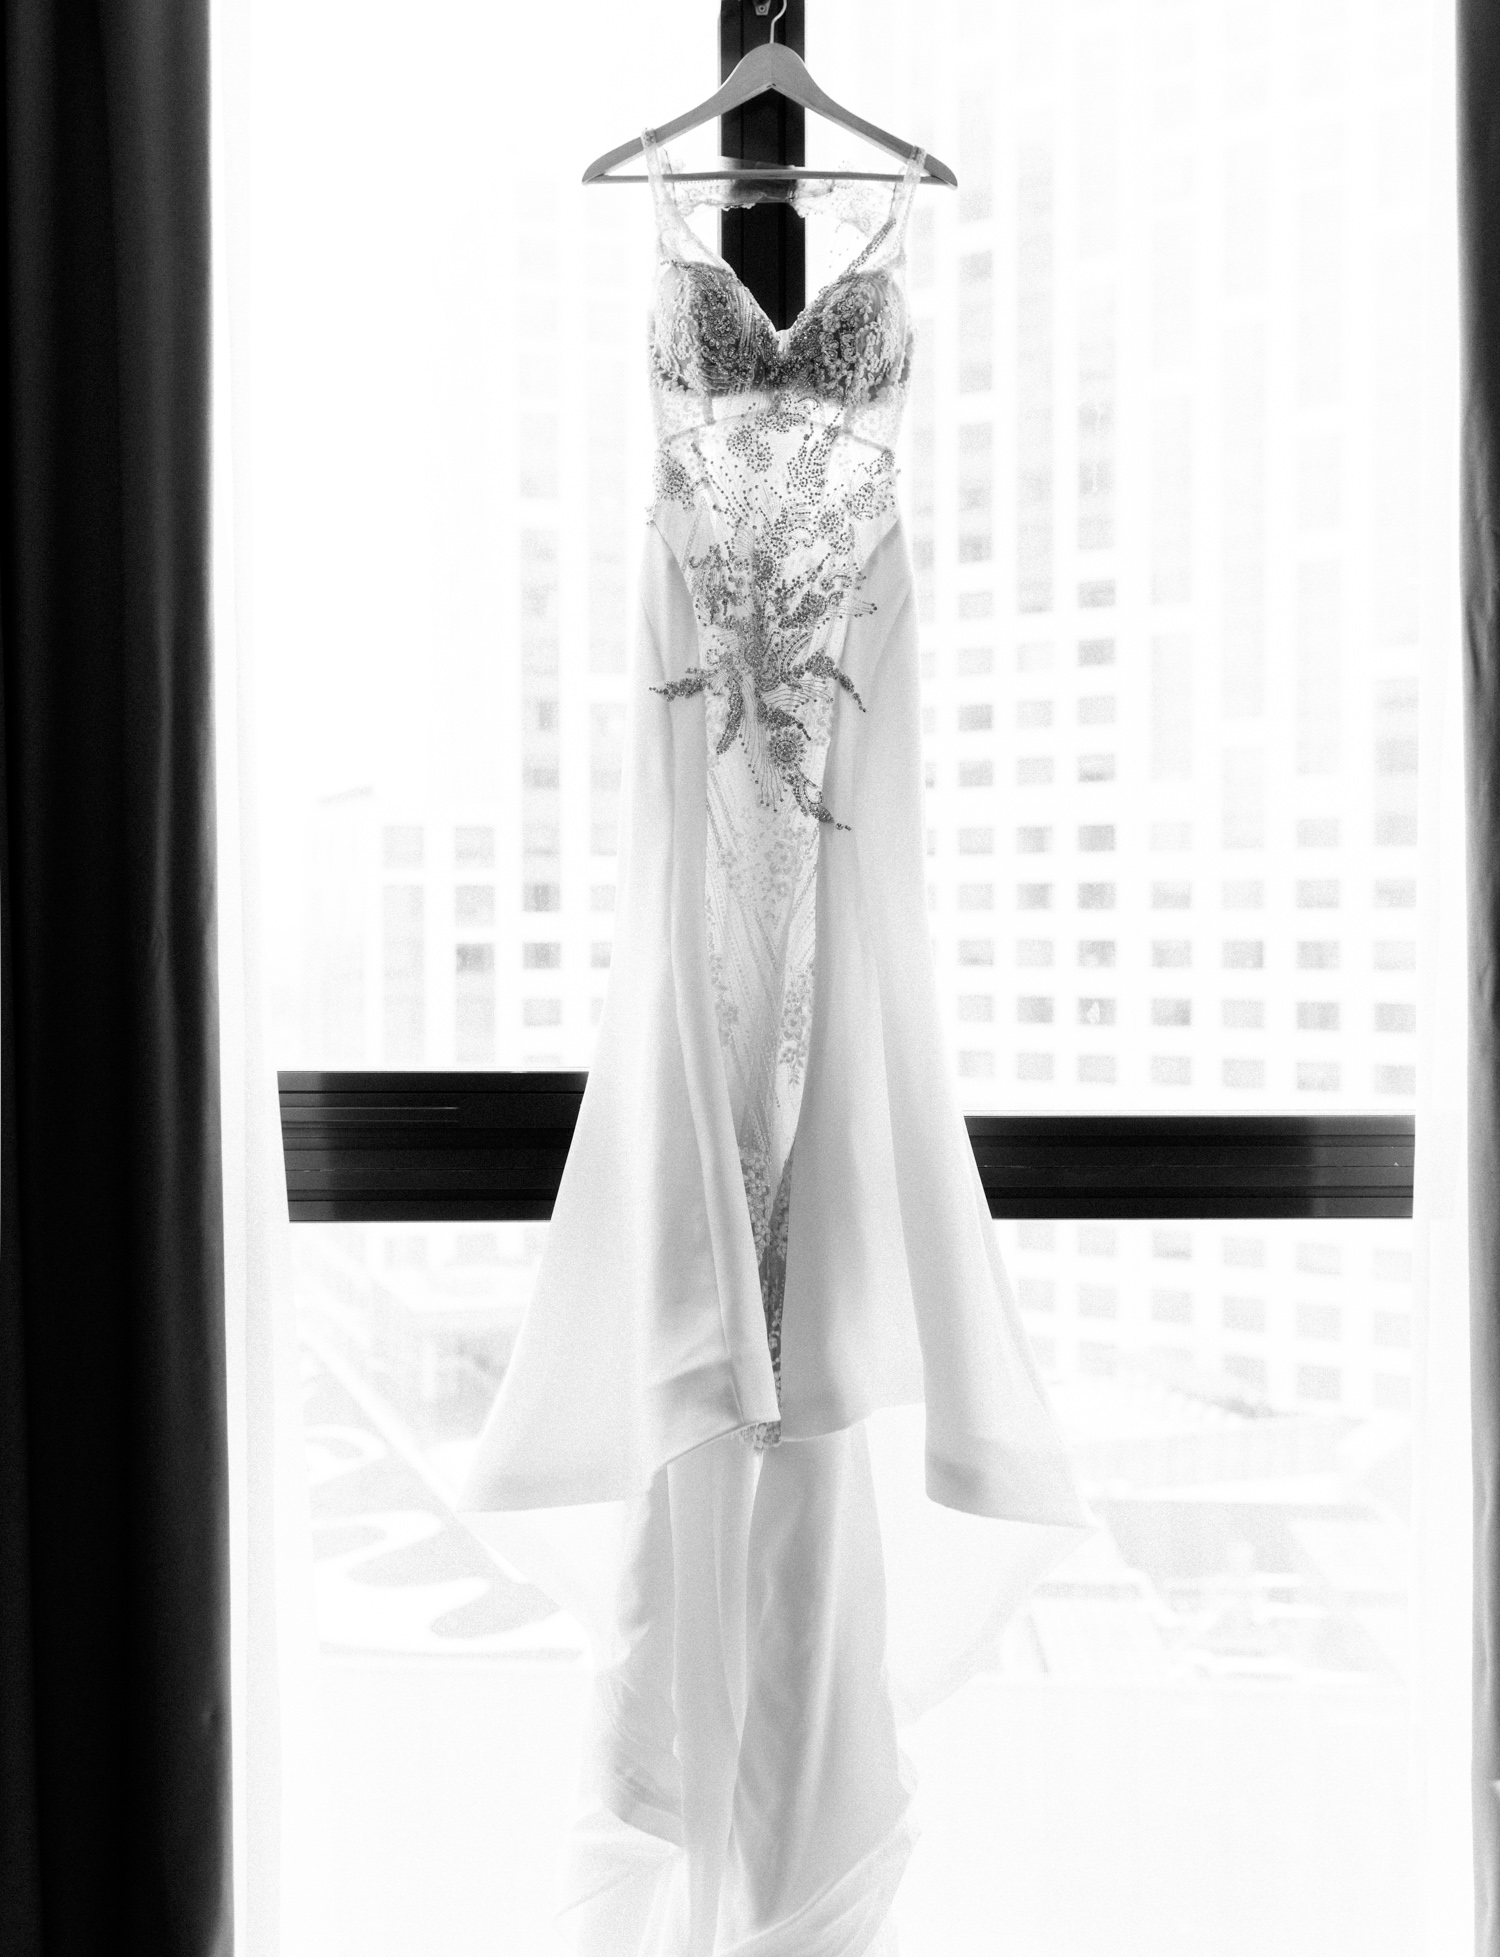 A fitted wedding dress with intricate beading and crystal detail on a sheer bodice hangs in a window among skyscrapers in Brooklyn, New York